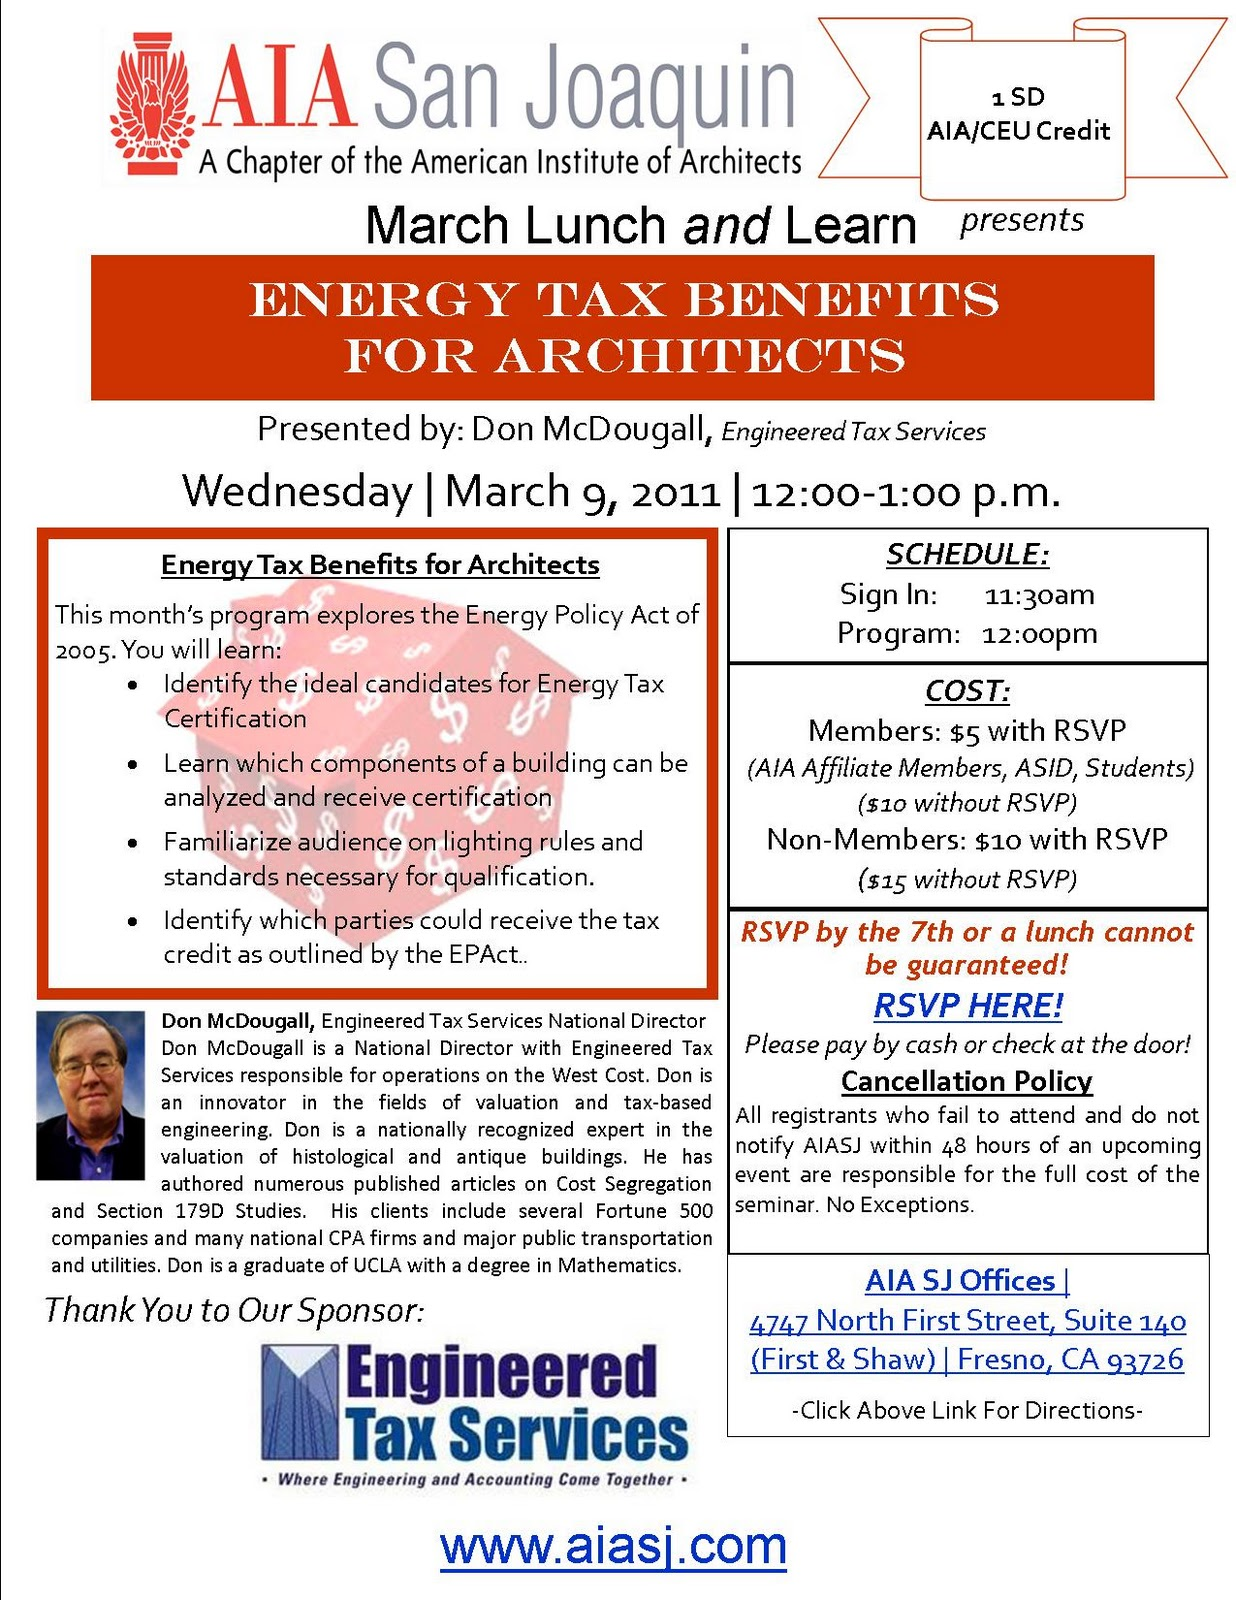 AIA Continuing Education Credits | Lunch and Learn